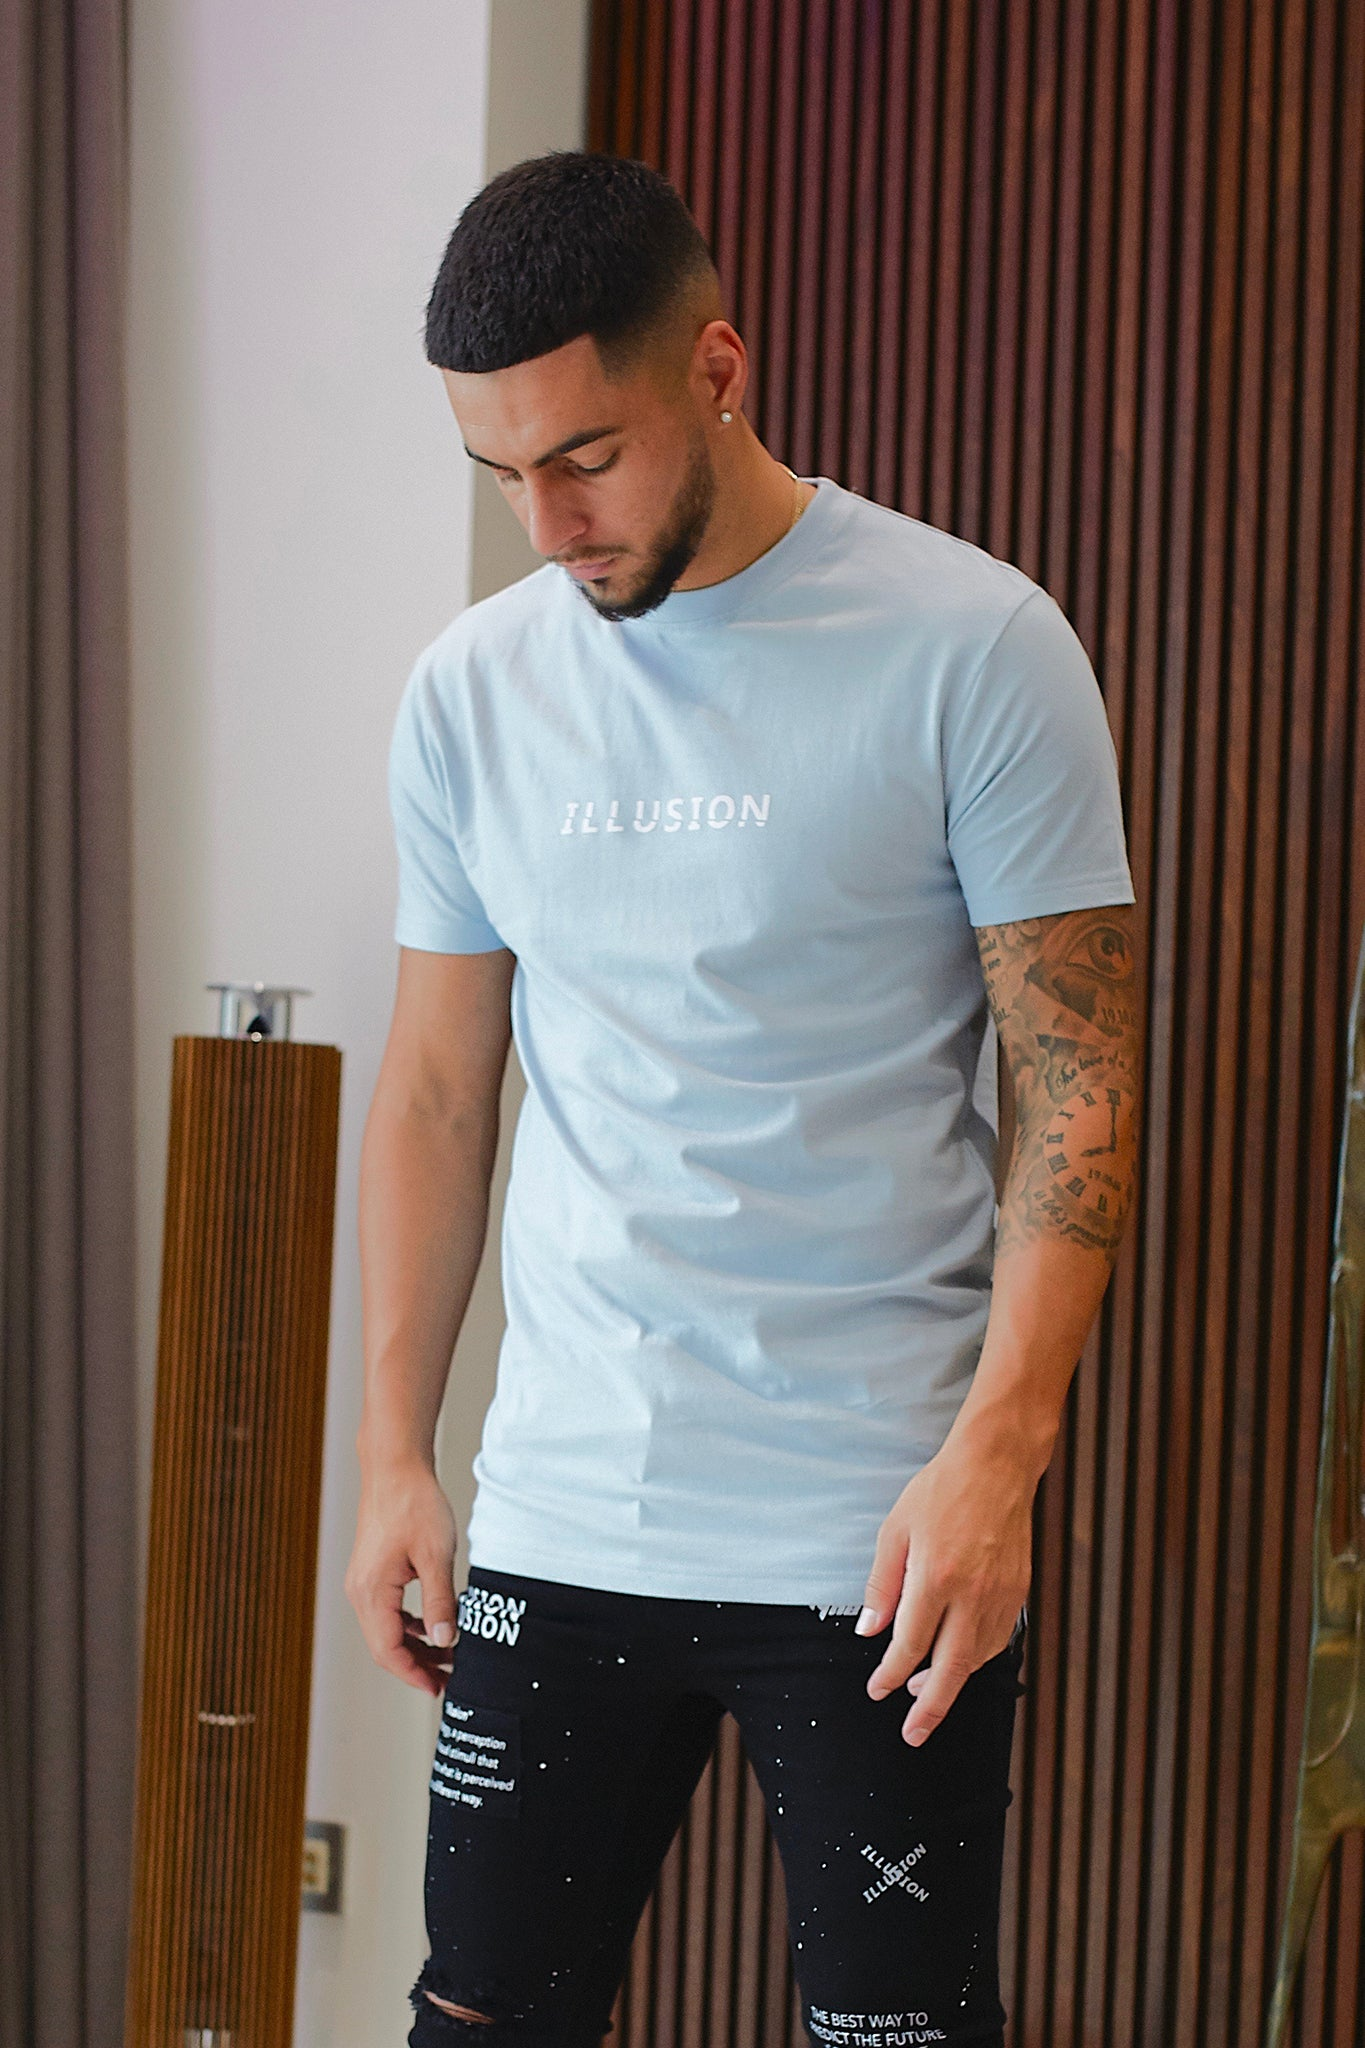 BLUE SLICED LOGO T-SHIRT - Illusion Attire